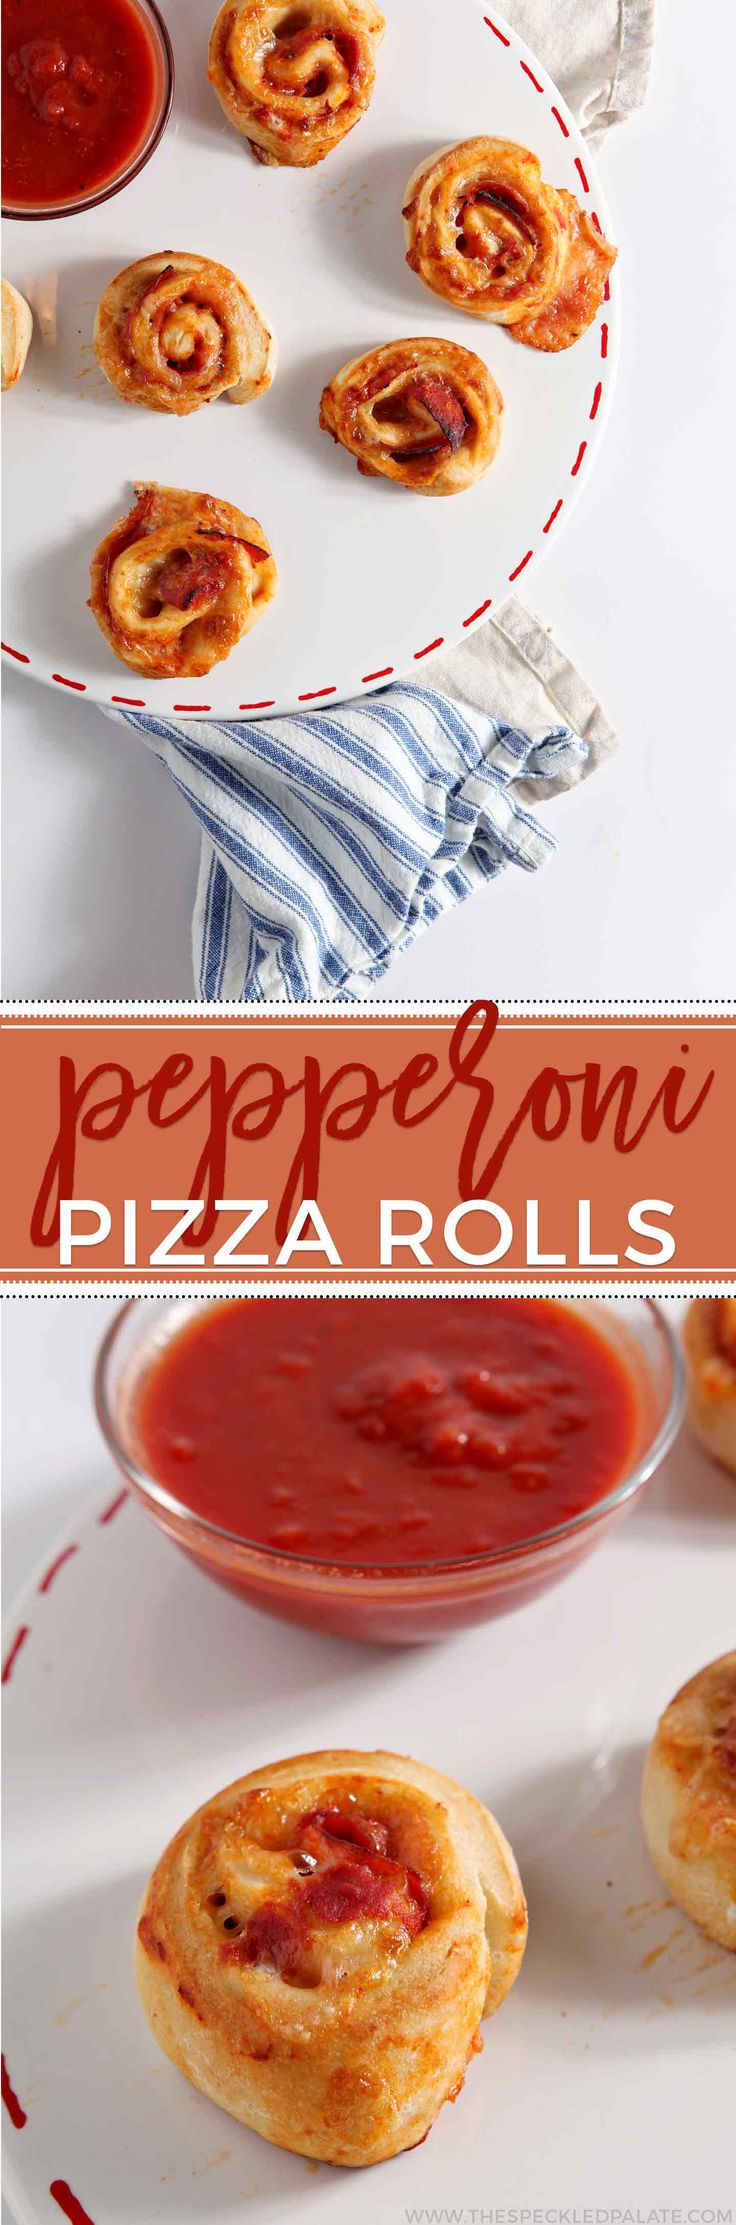 Serve up Pepperoni Pizza Rolls to feed a crowd! Store-bought pizza dough is rolled flat, then filled with tomato sauce, mozzarella cheese and pepperoni, then rolled into pinwheels and baked to make the ultimate gameday appetizer.